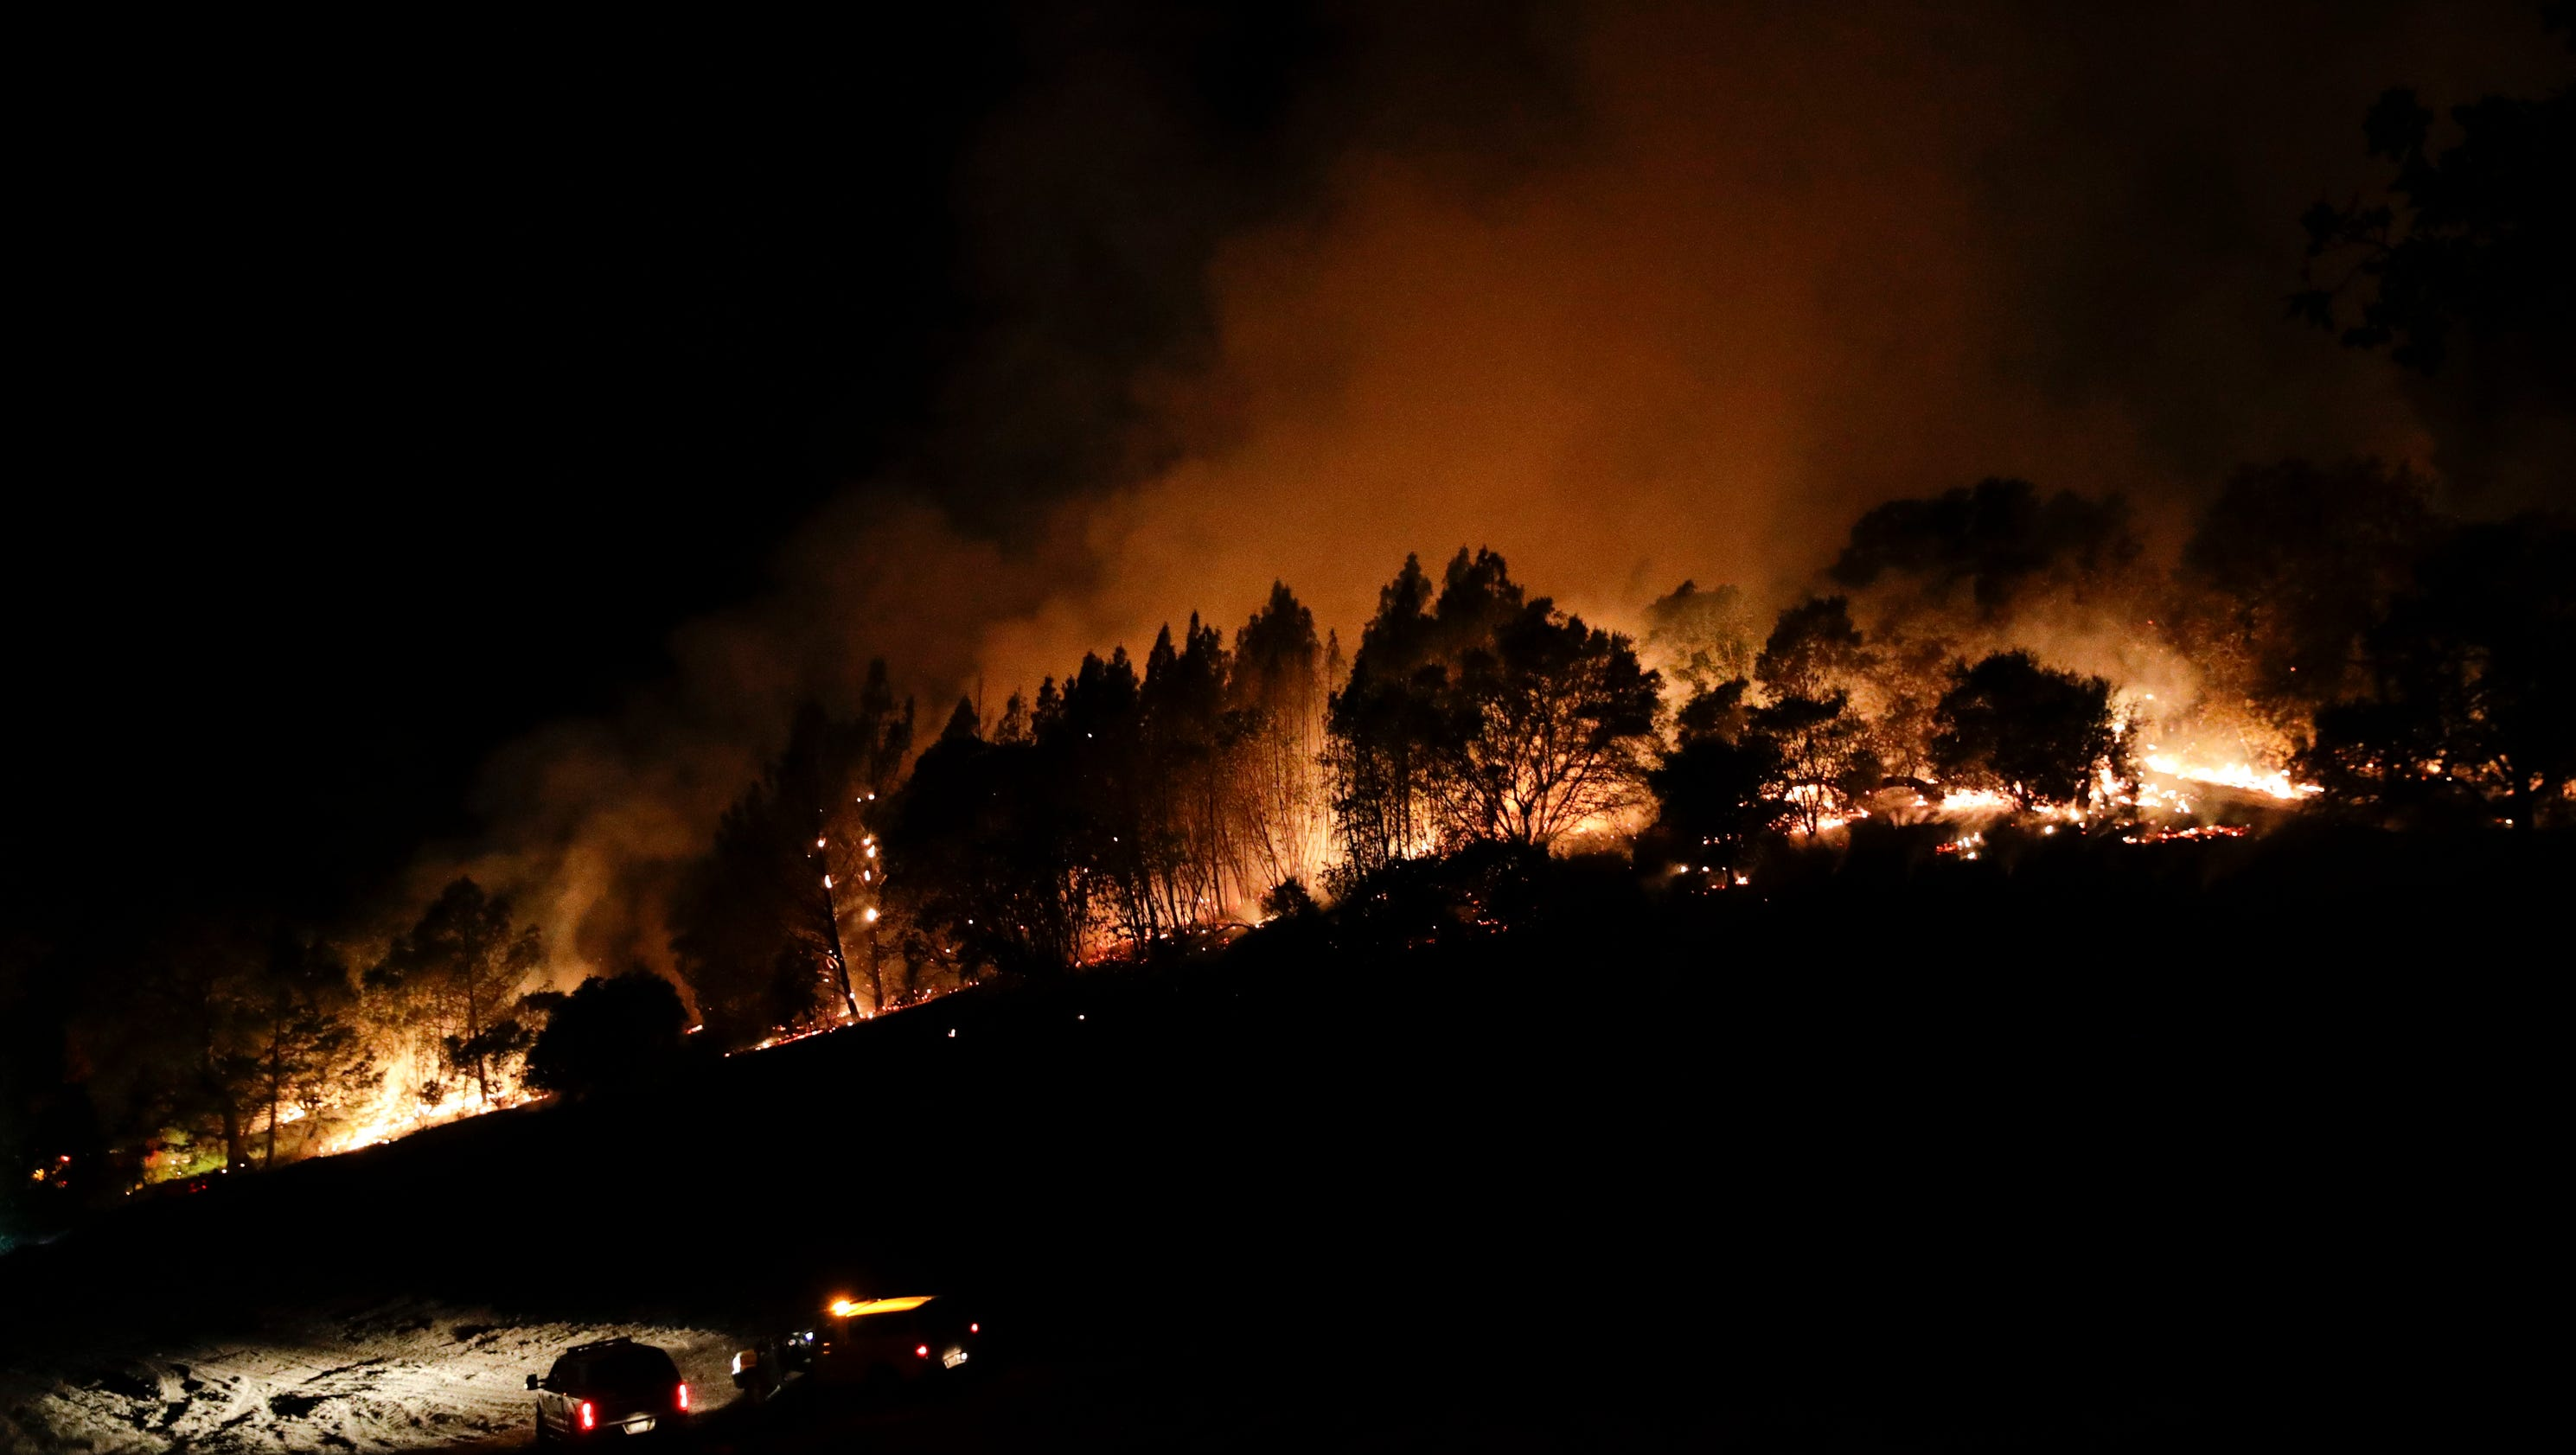 Thousands flee massive Southern California wildfire - NBC News